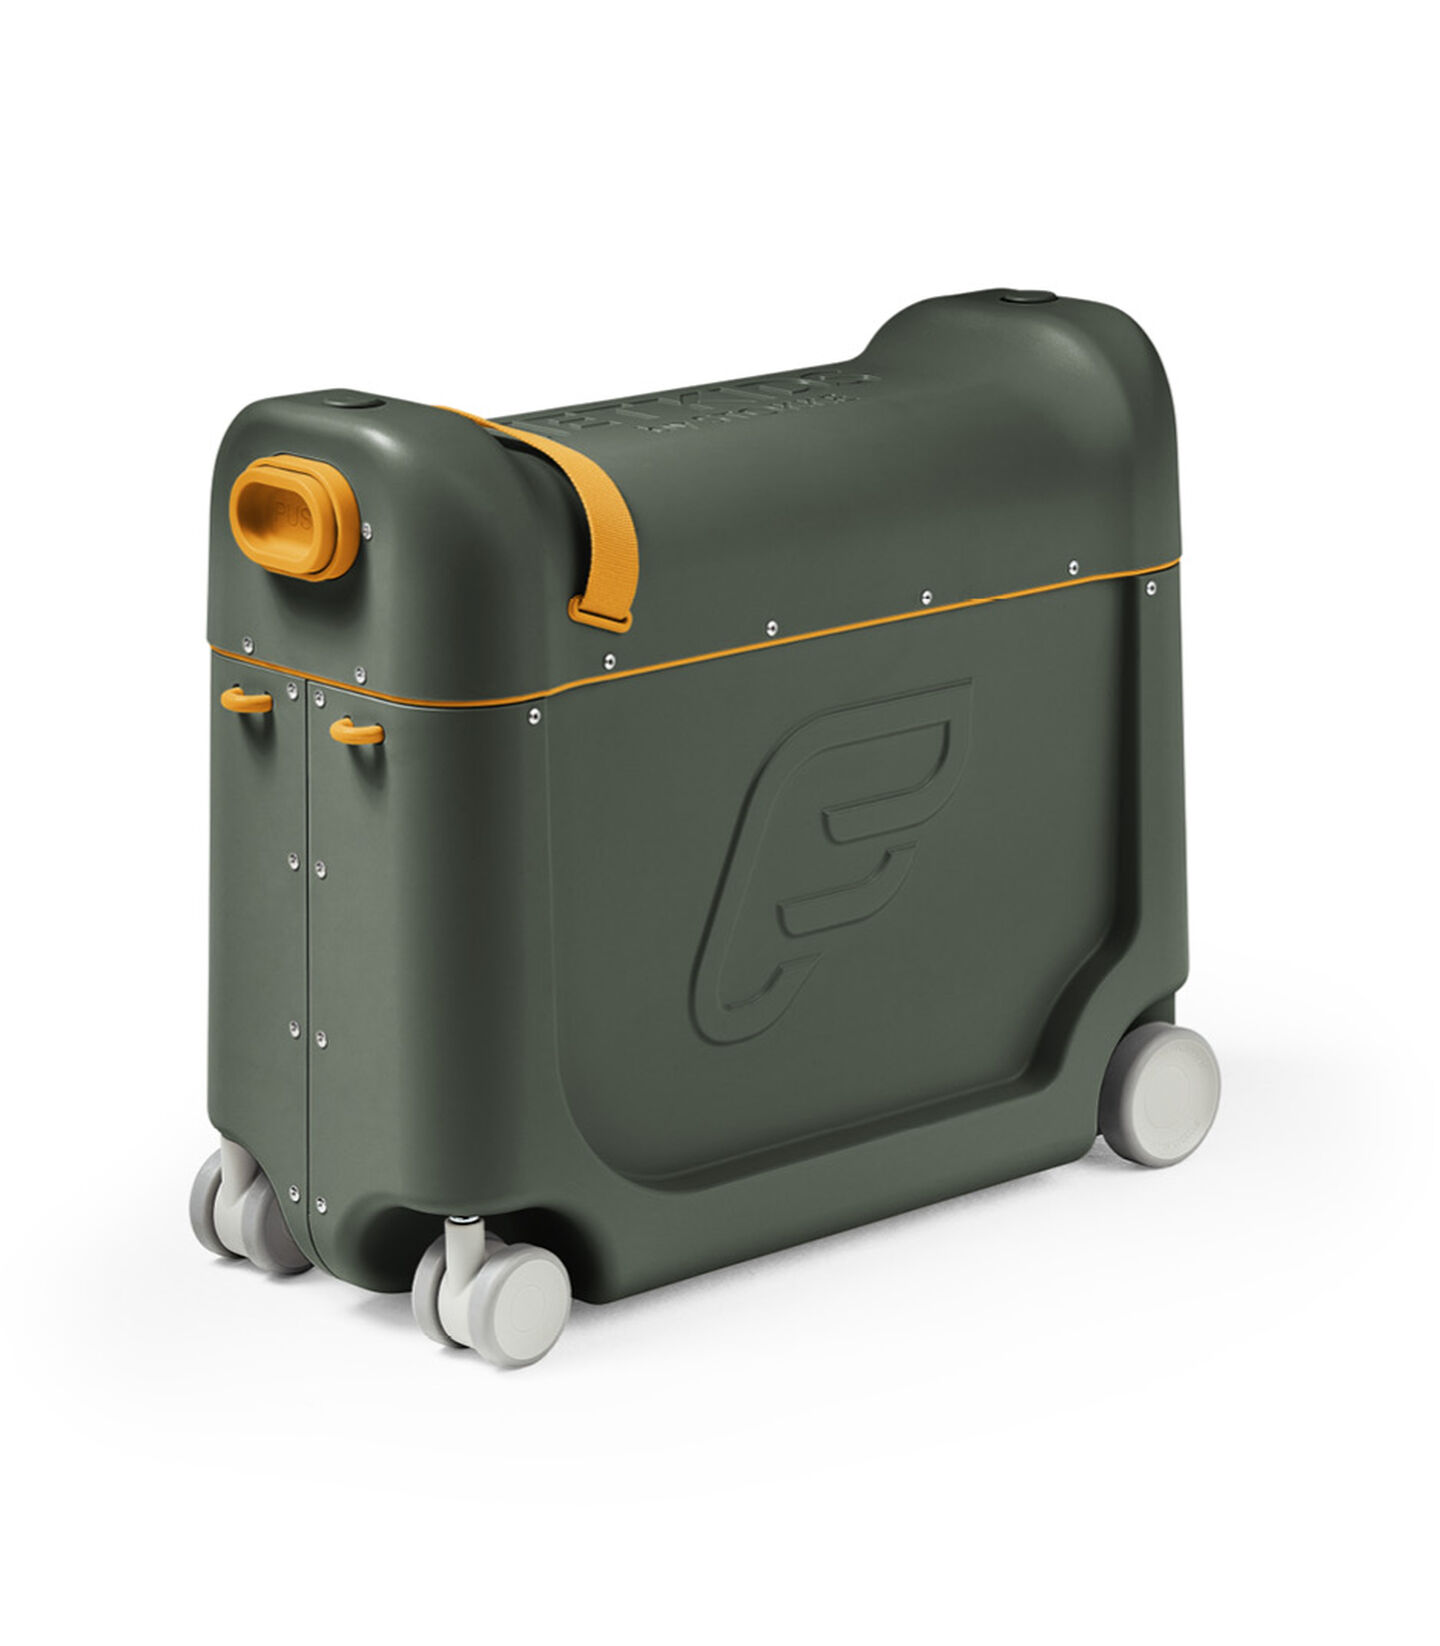 JetKids™ by Stokke® BedBox V3. Golden Olive. Limited Edition 2021 view 1